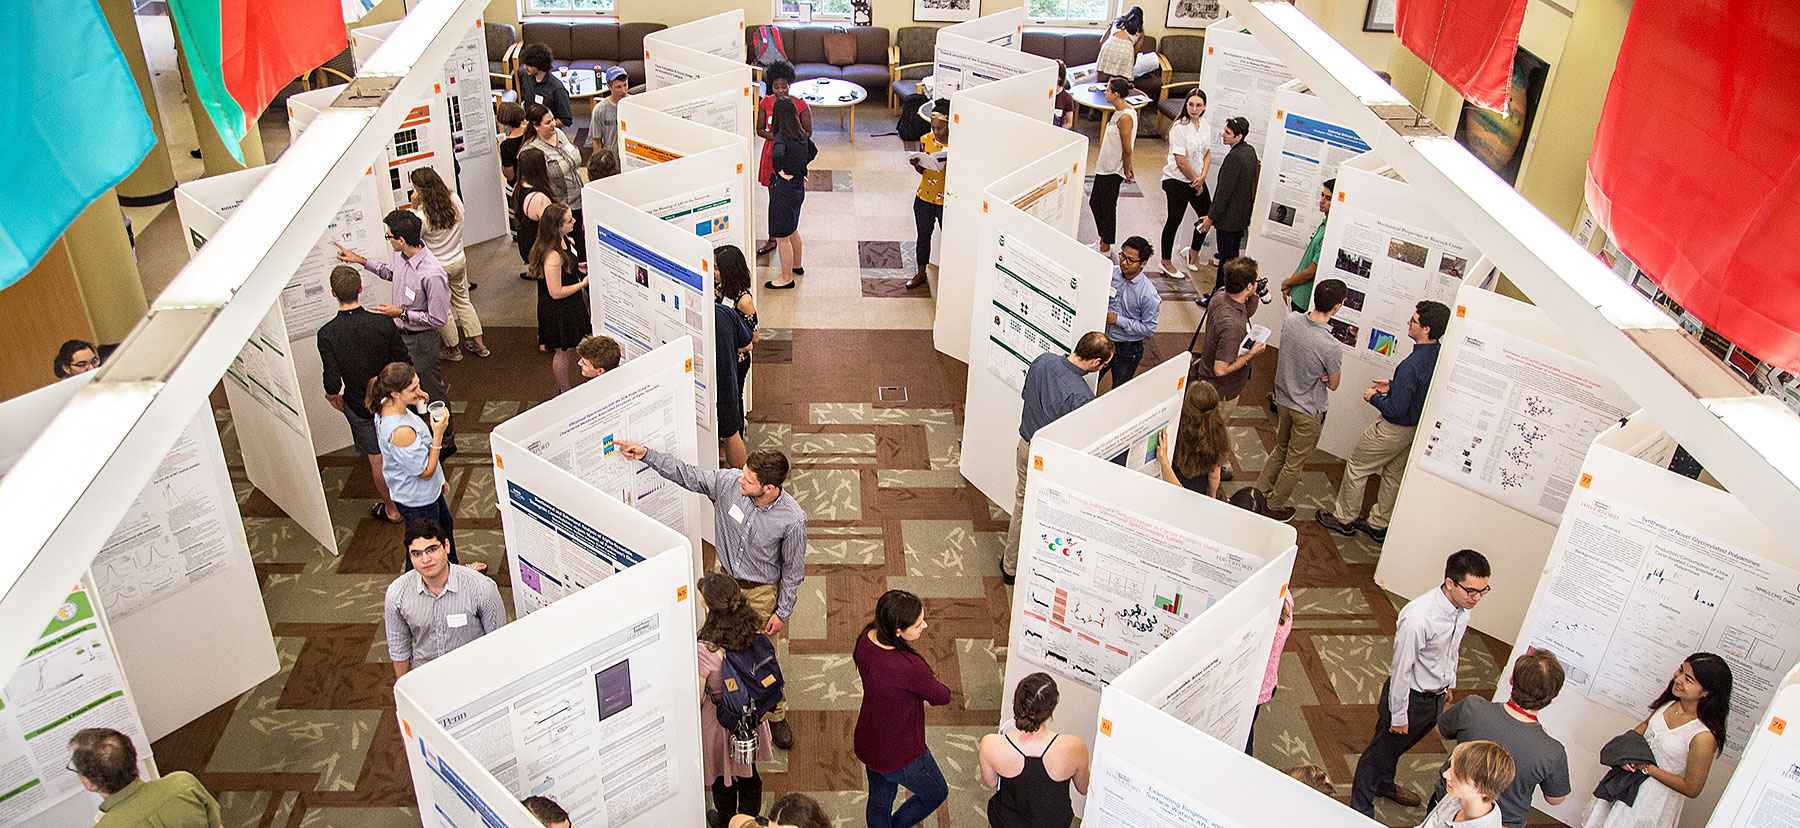 Students giving poster presentations